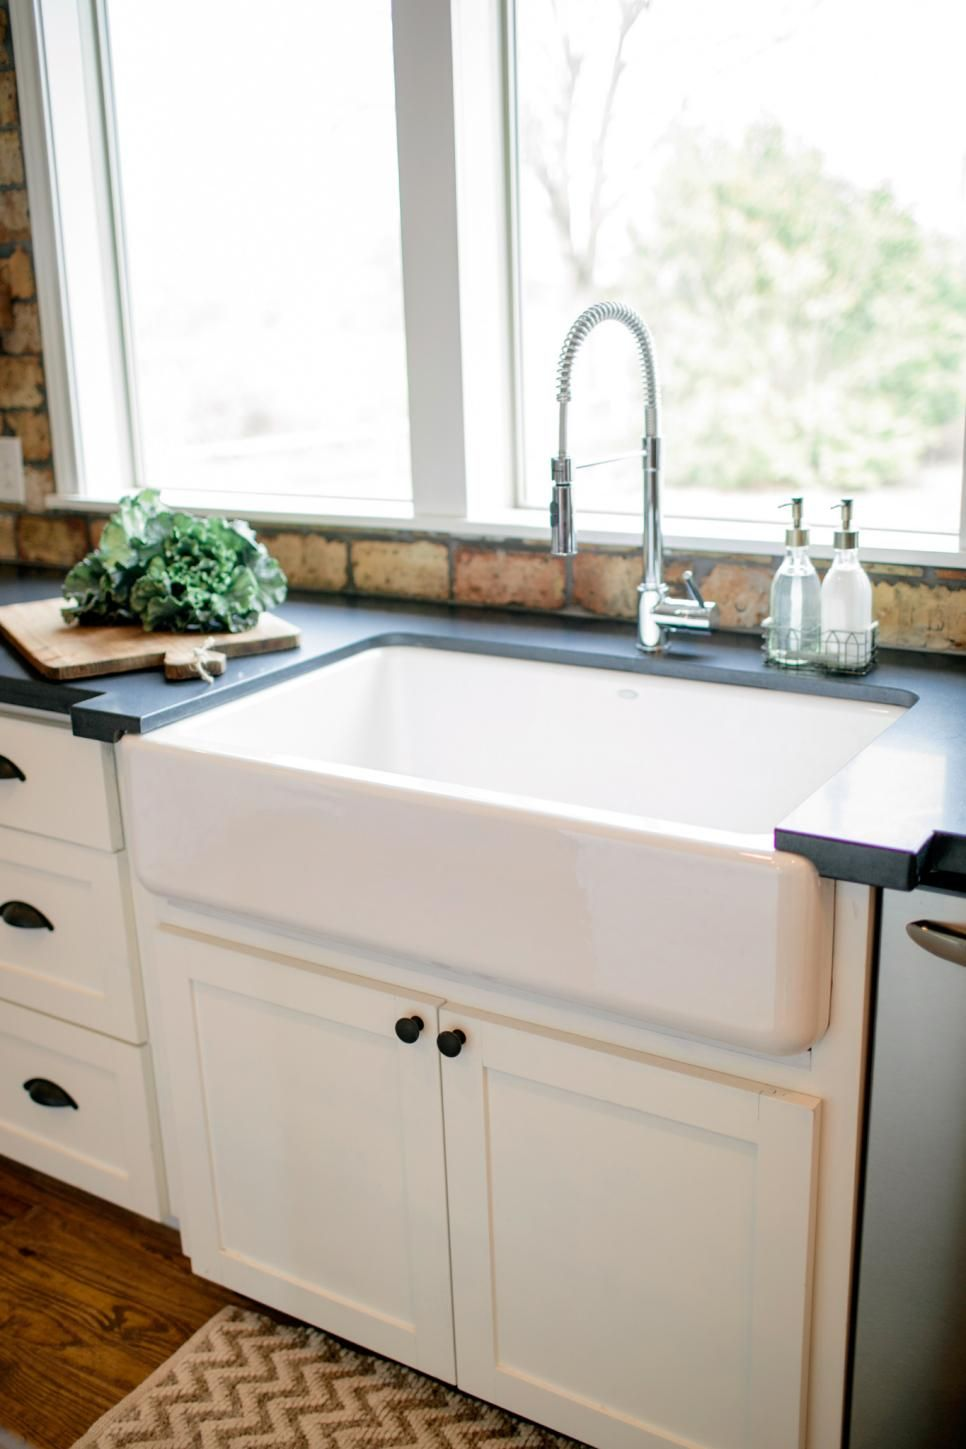 Hgtv fixer upper kitchen faucet - Fixer Upper Kitchen Sink 17 Best Images About Fixer Upper Inspired On Pinterest Stainless Steel